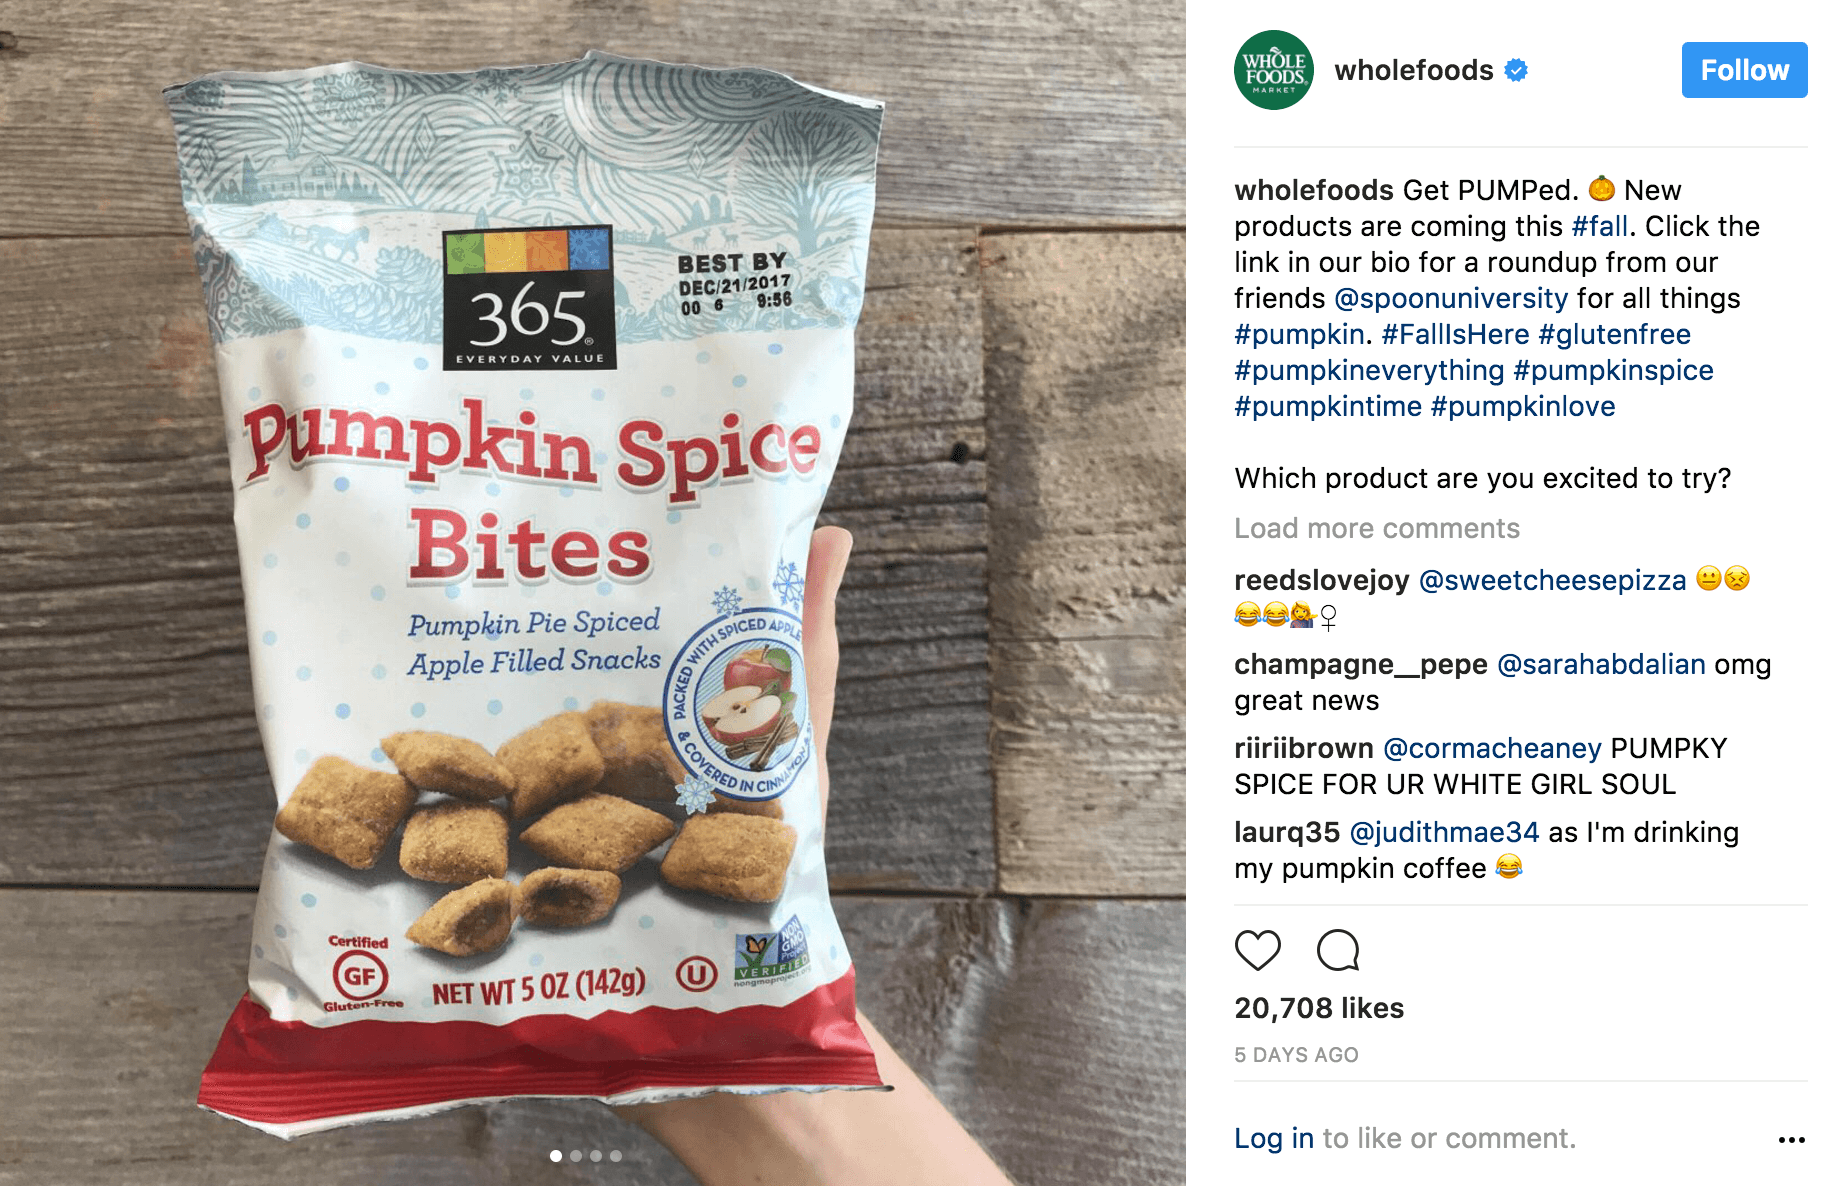 Wholefoods instagram